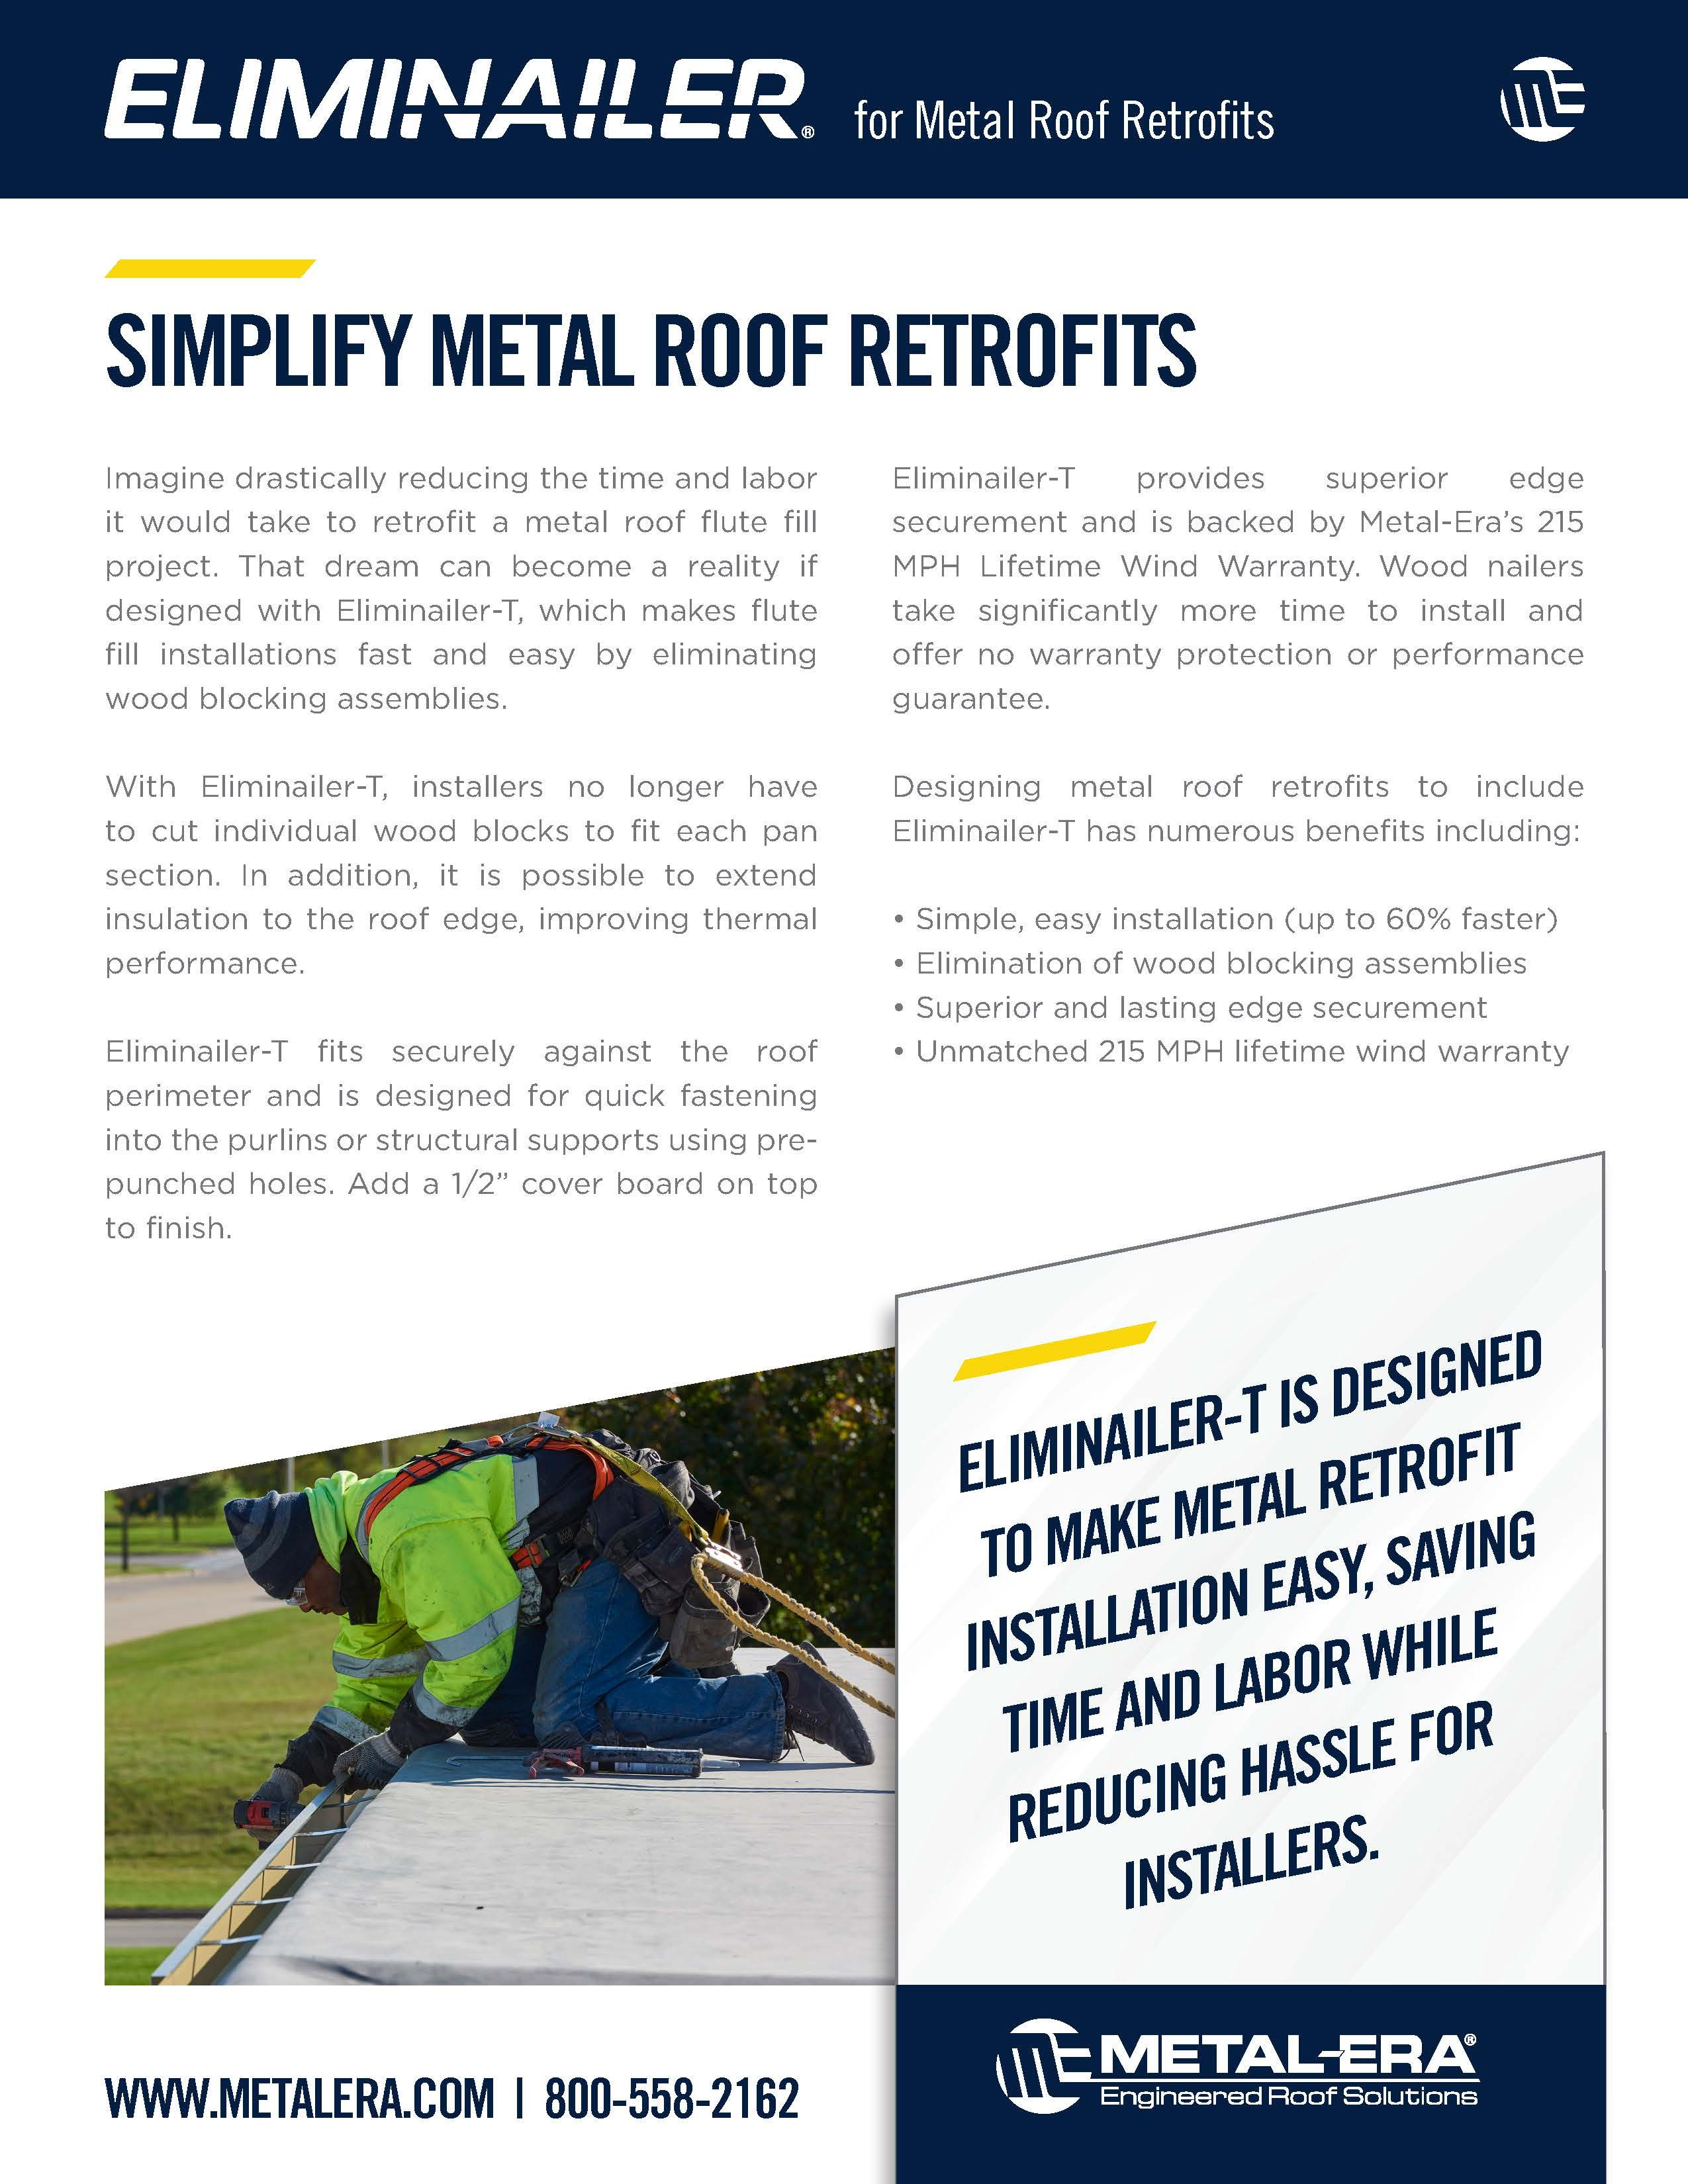 Eliminailer Metal Retrofit Sell Sheet In 2020 Roofing Systems How To Become Metal Roof